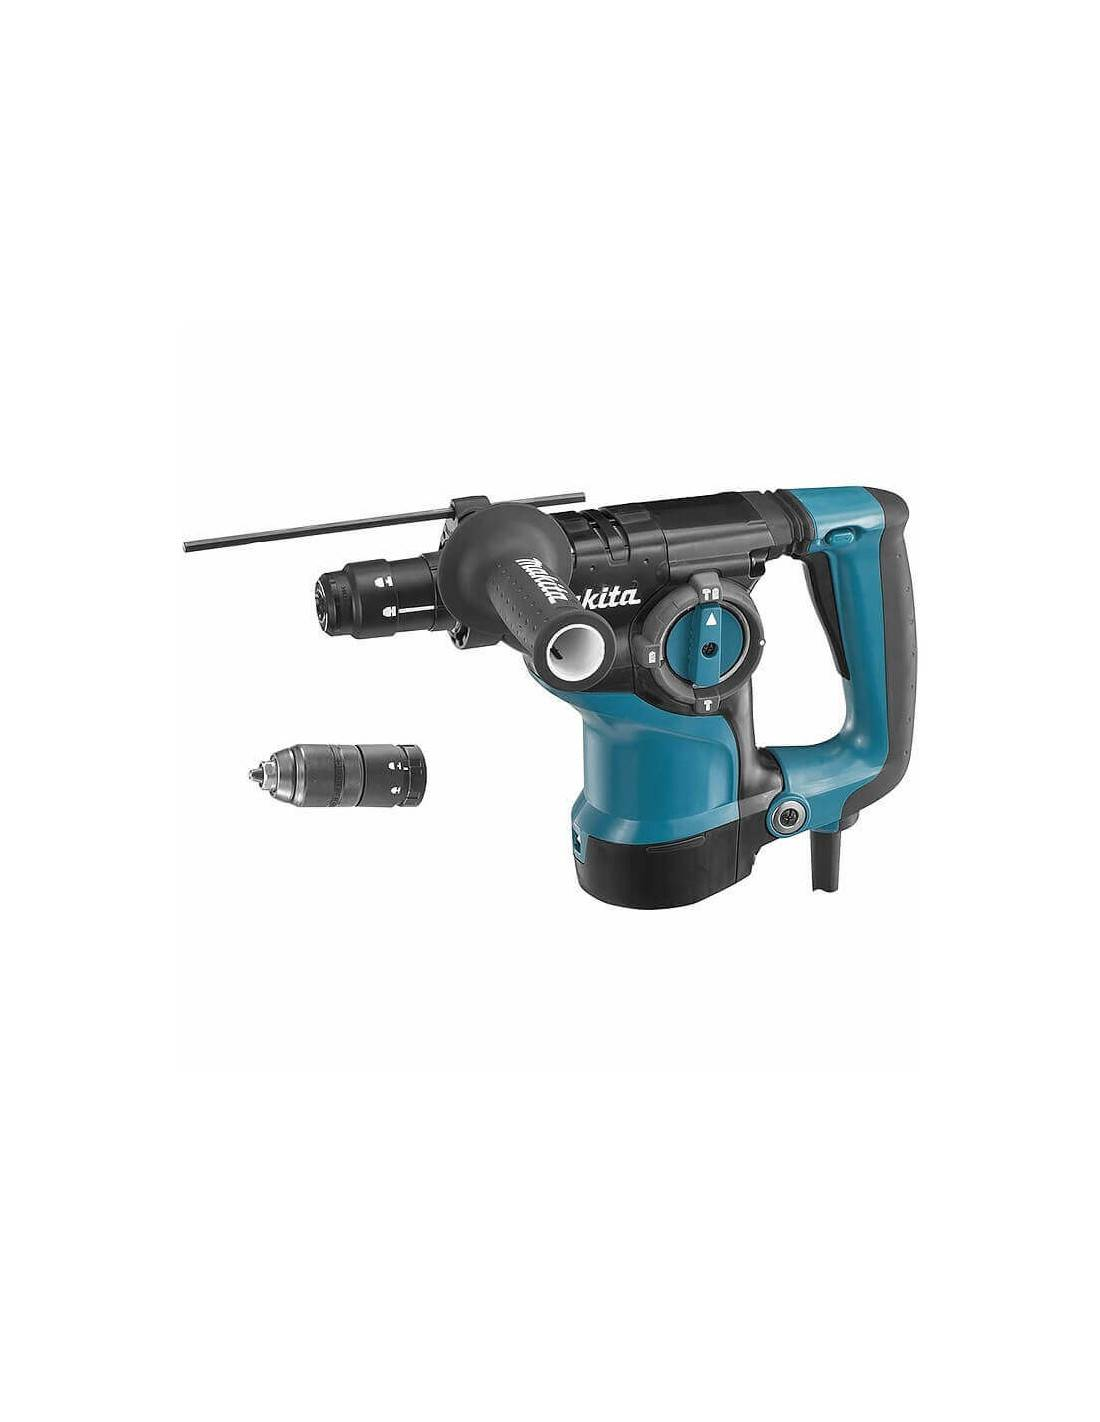 Perfo-burineur SDS+ 800W en coffret standard - MAKITA - HR2811FT